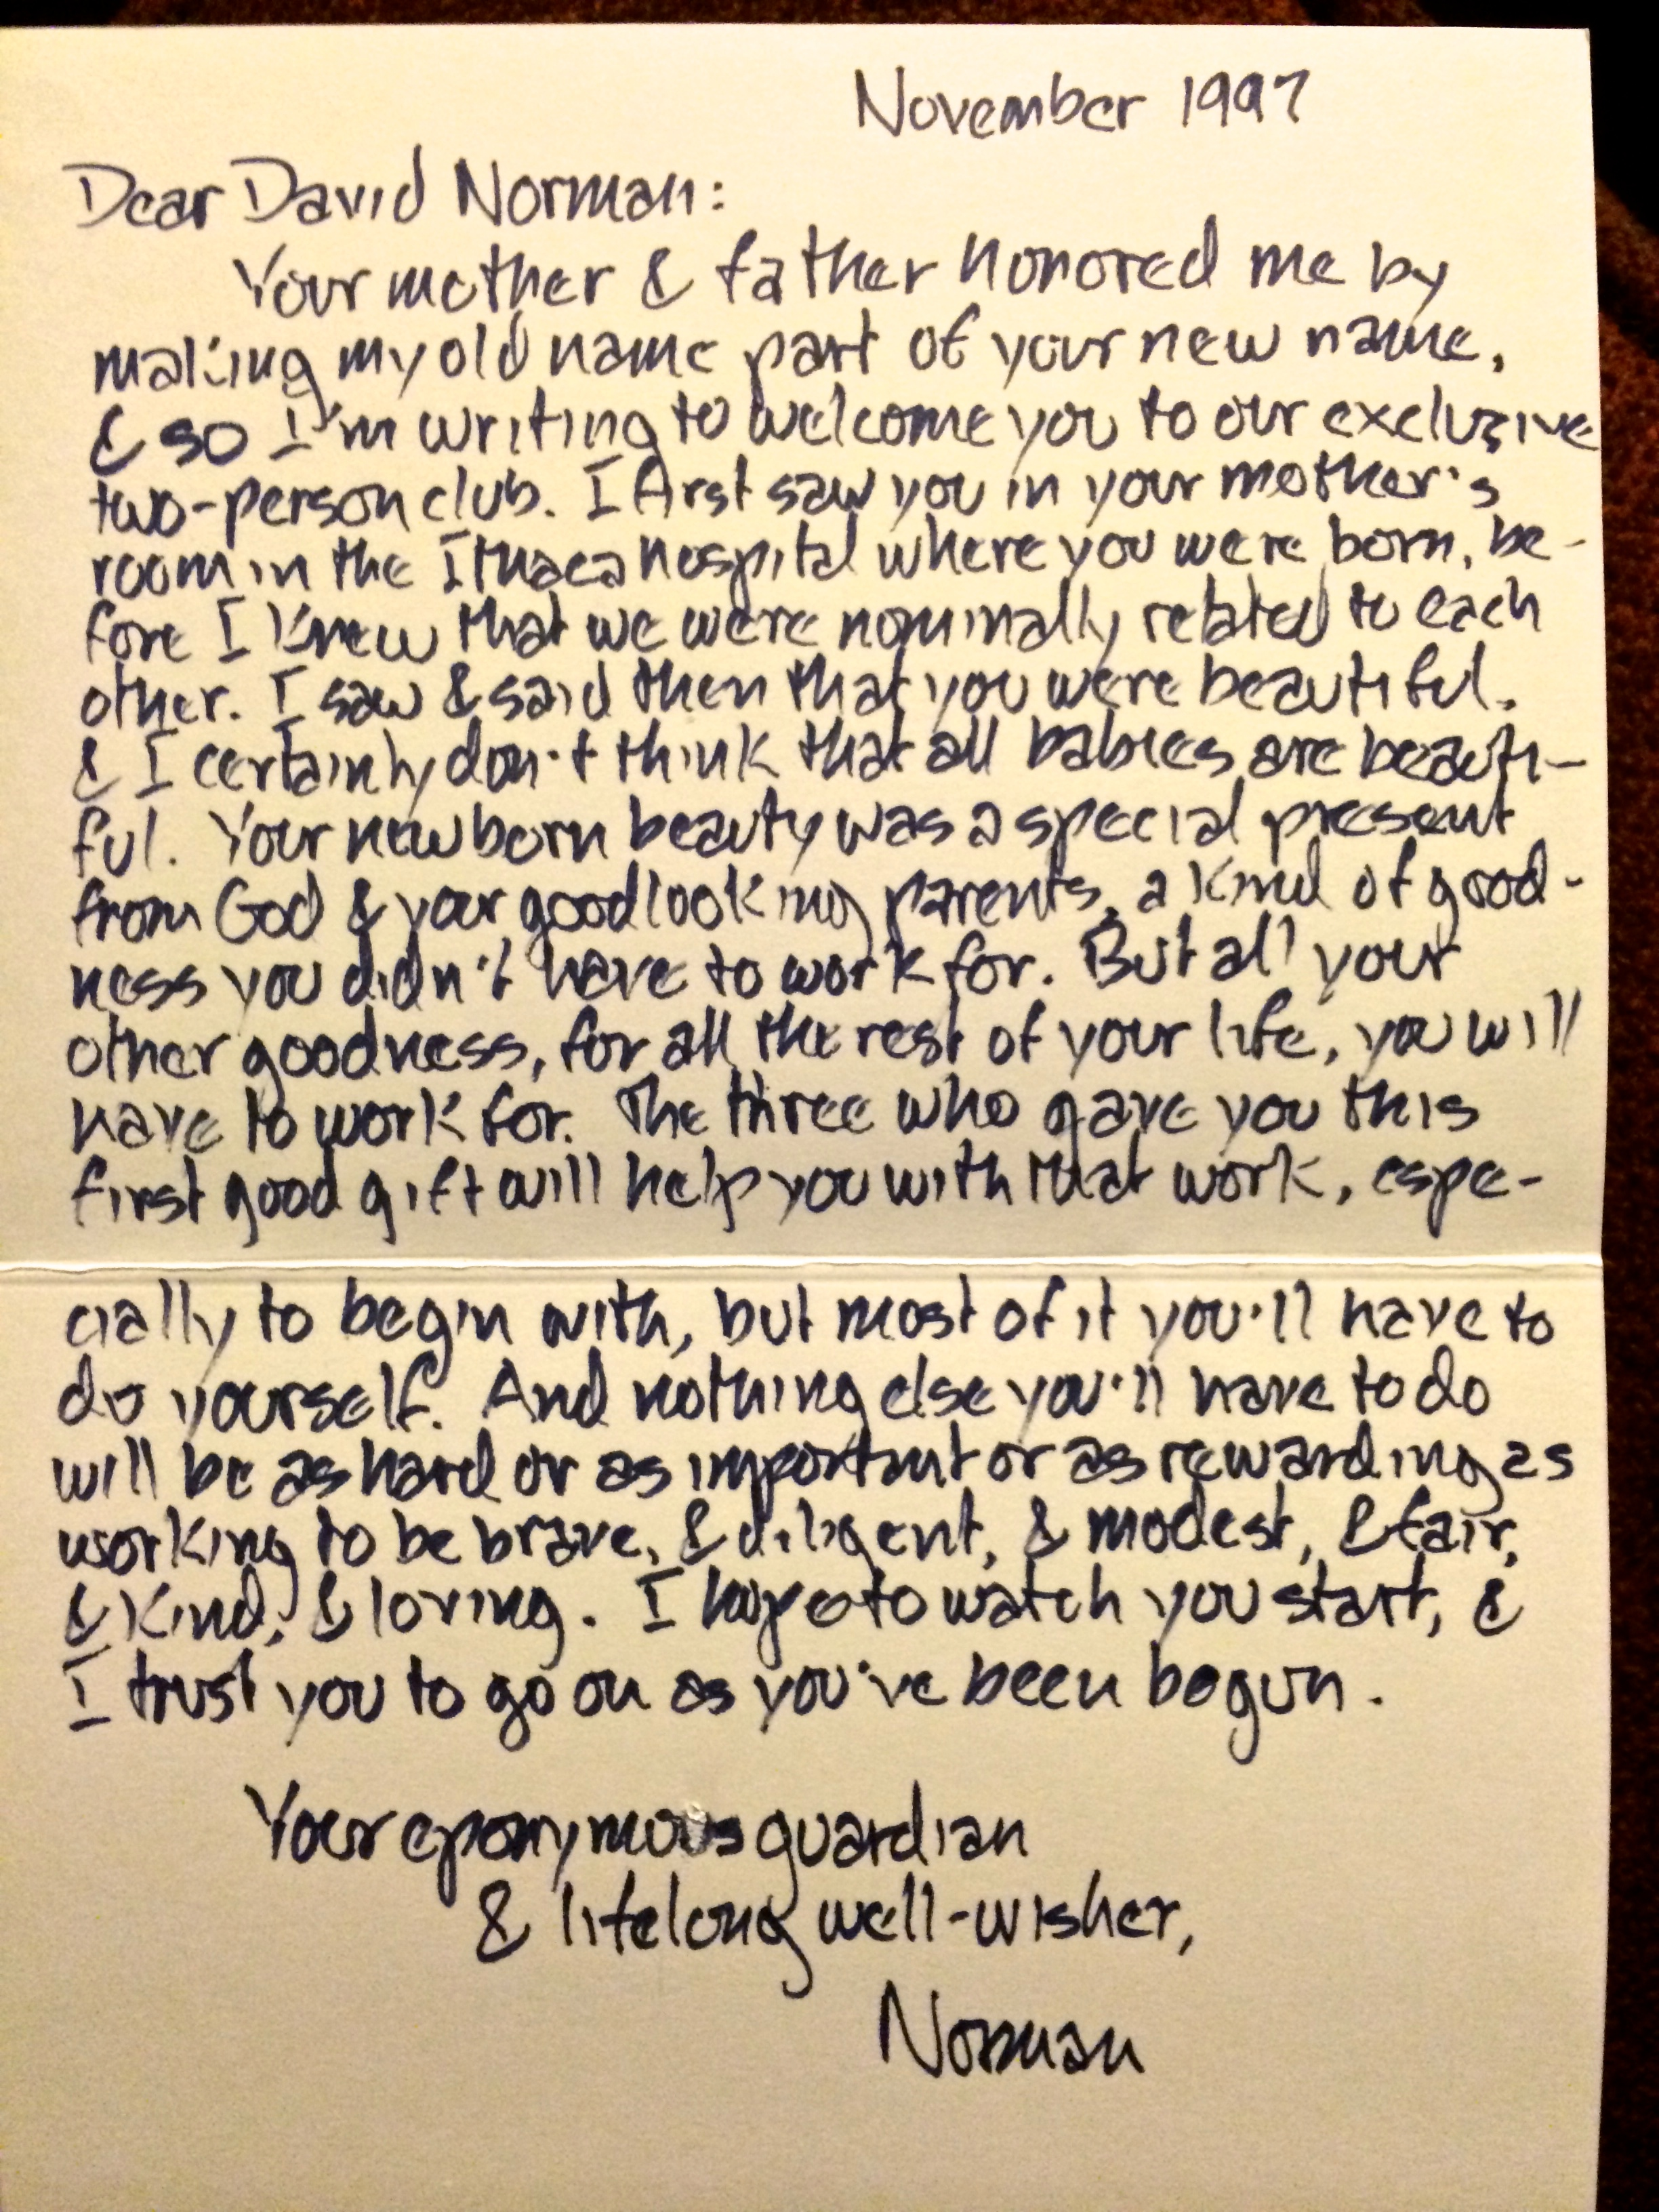 Norman's letter